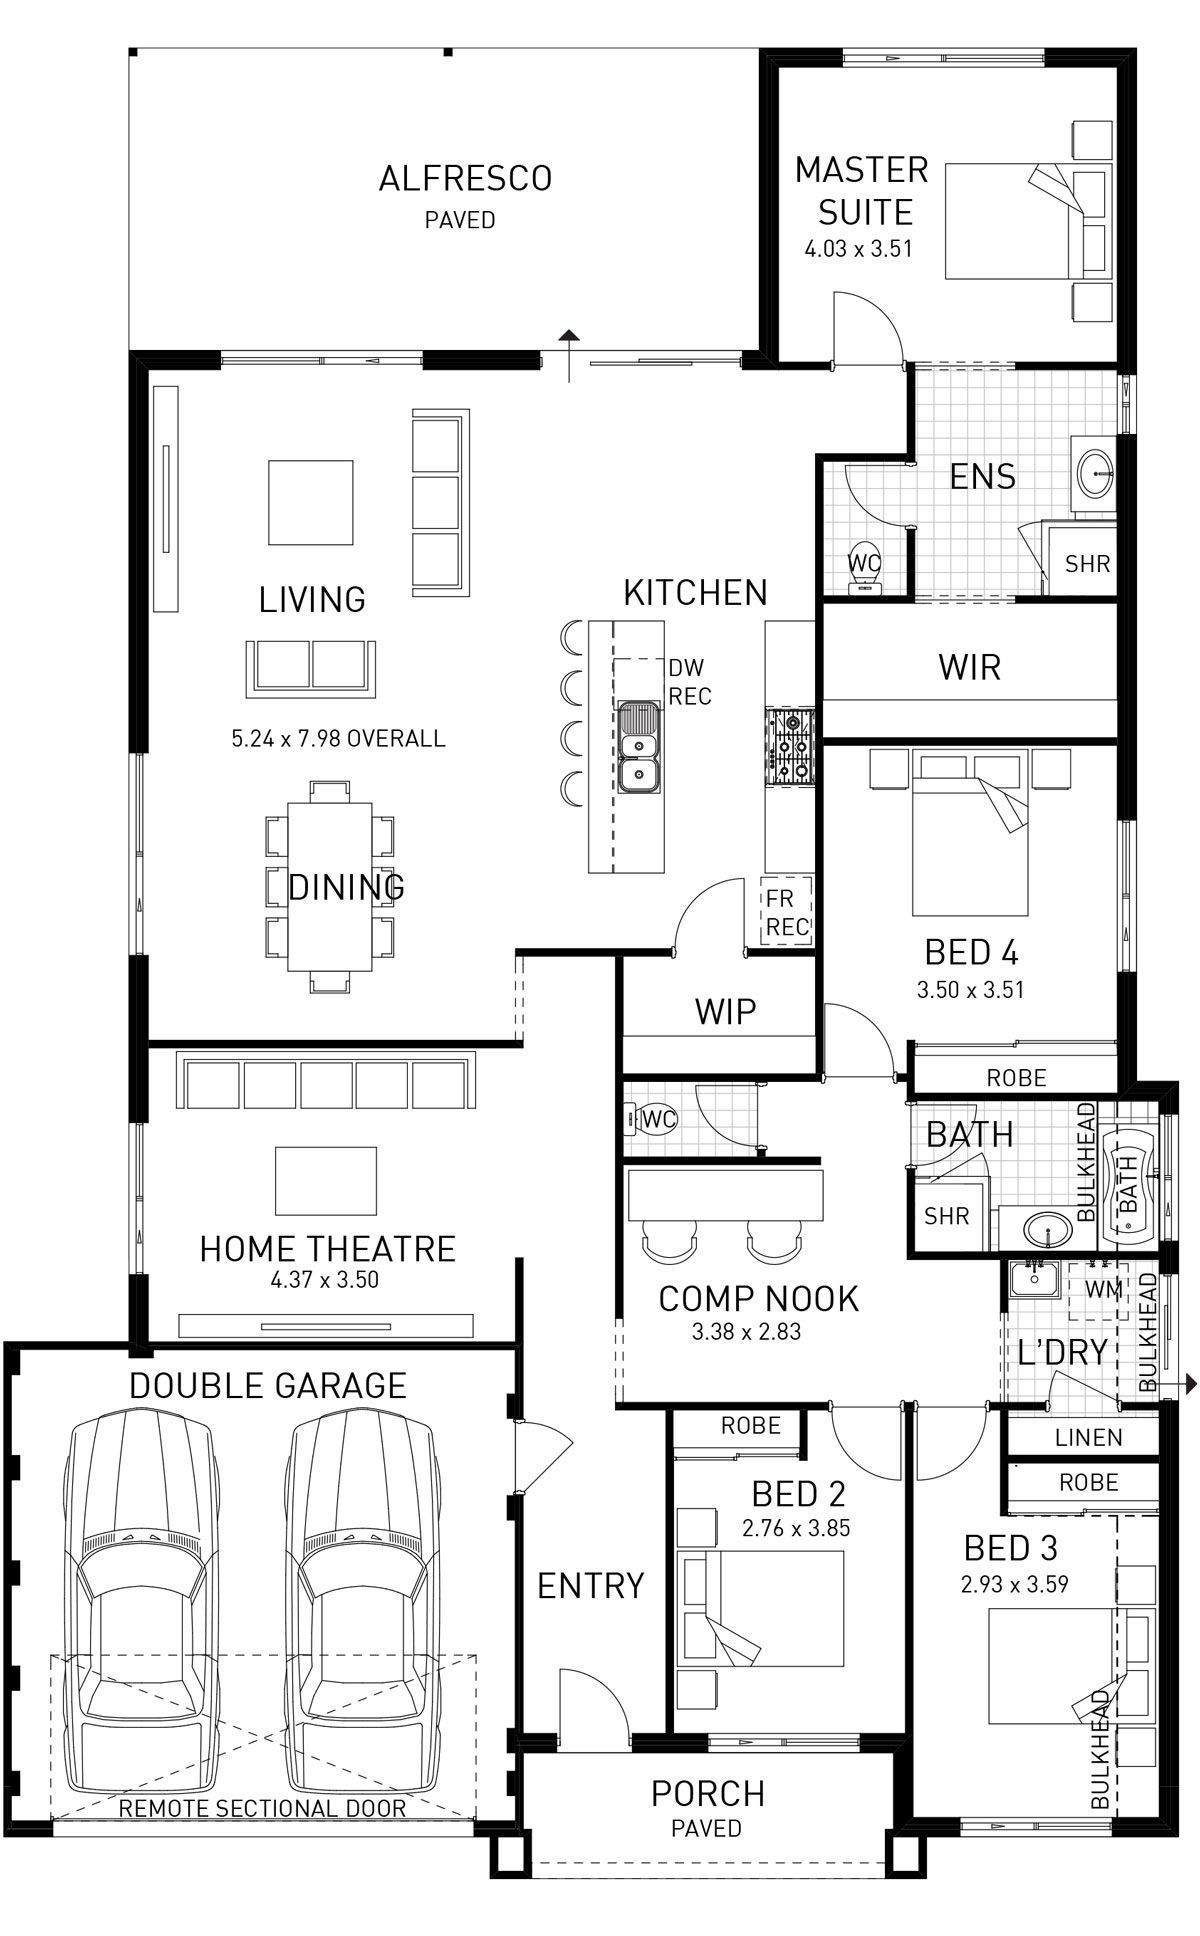 Move laundry and toliet to somewhere else verona single storey home design foundation floor plan wa also rh pinterest